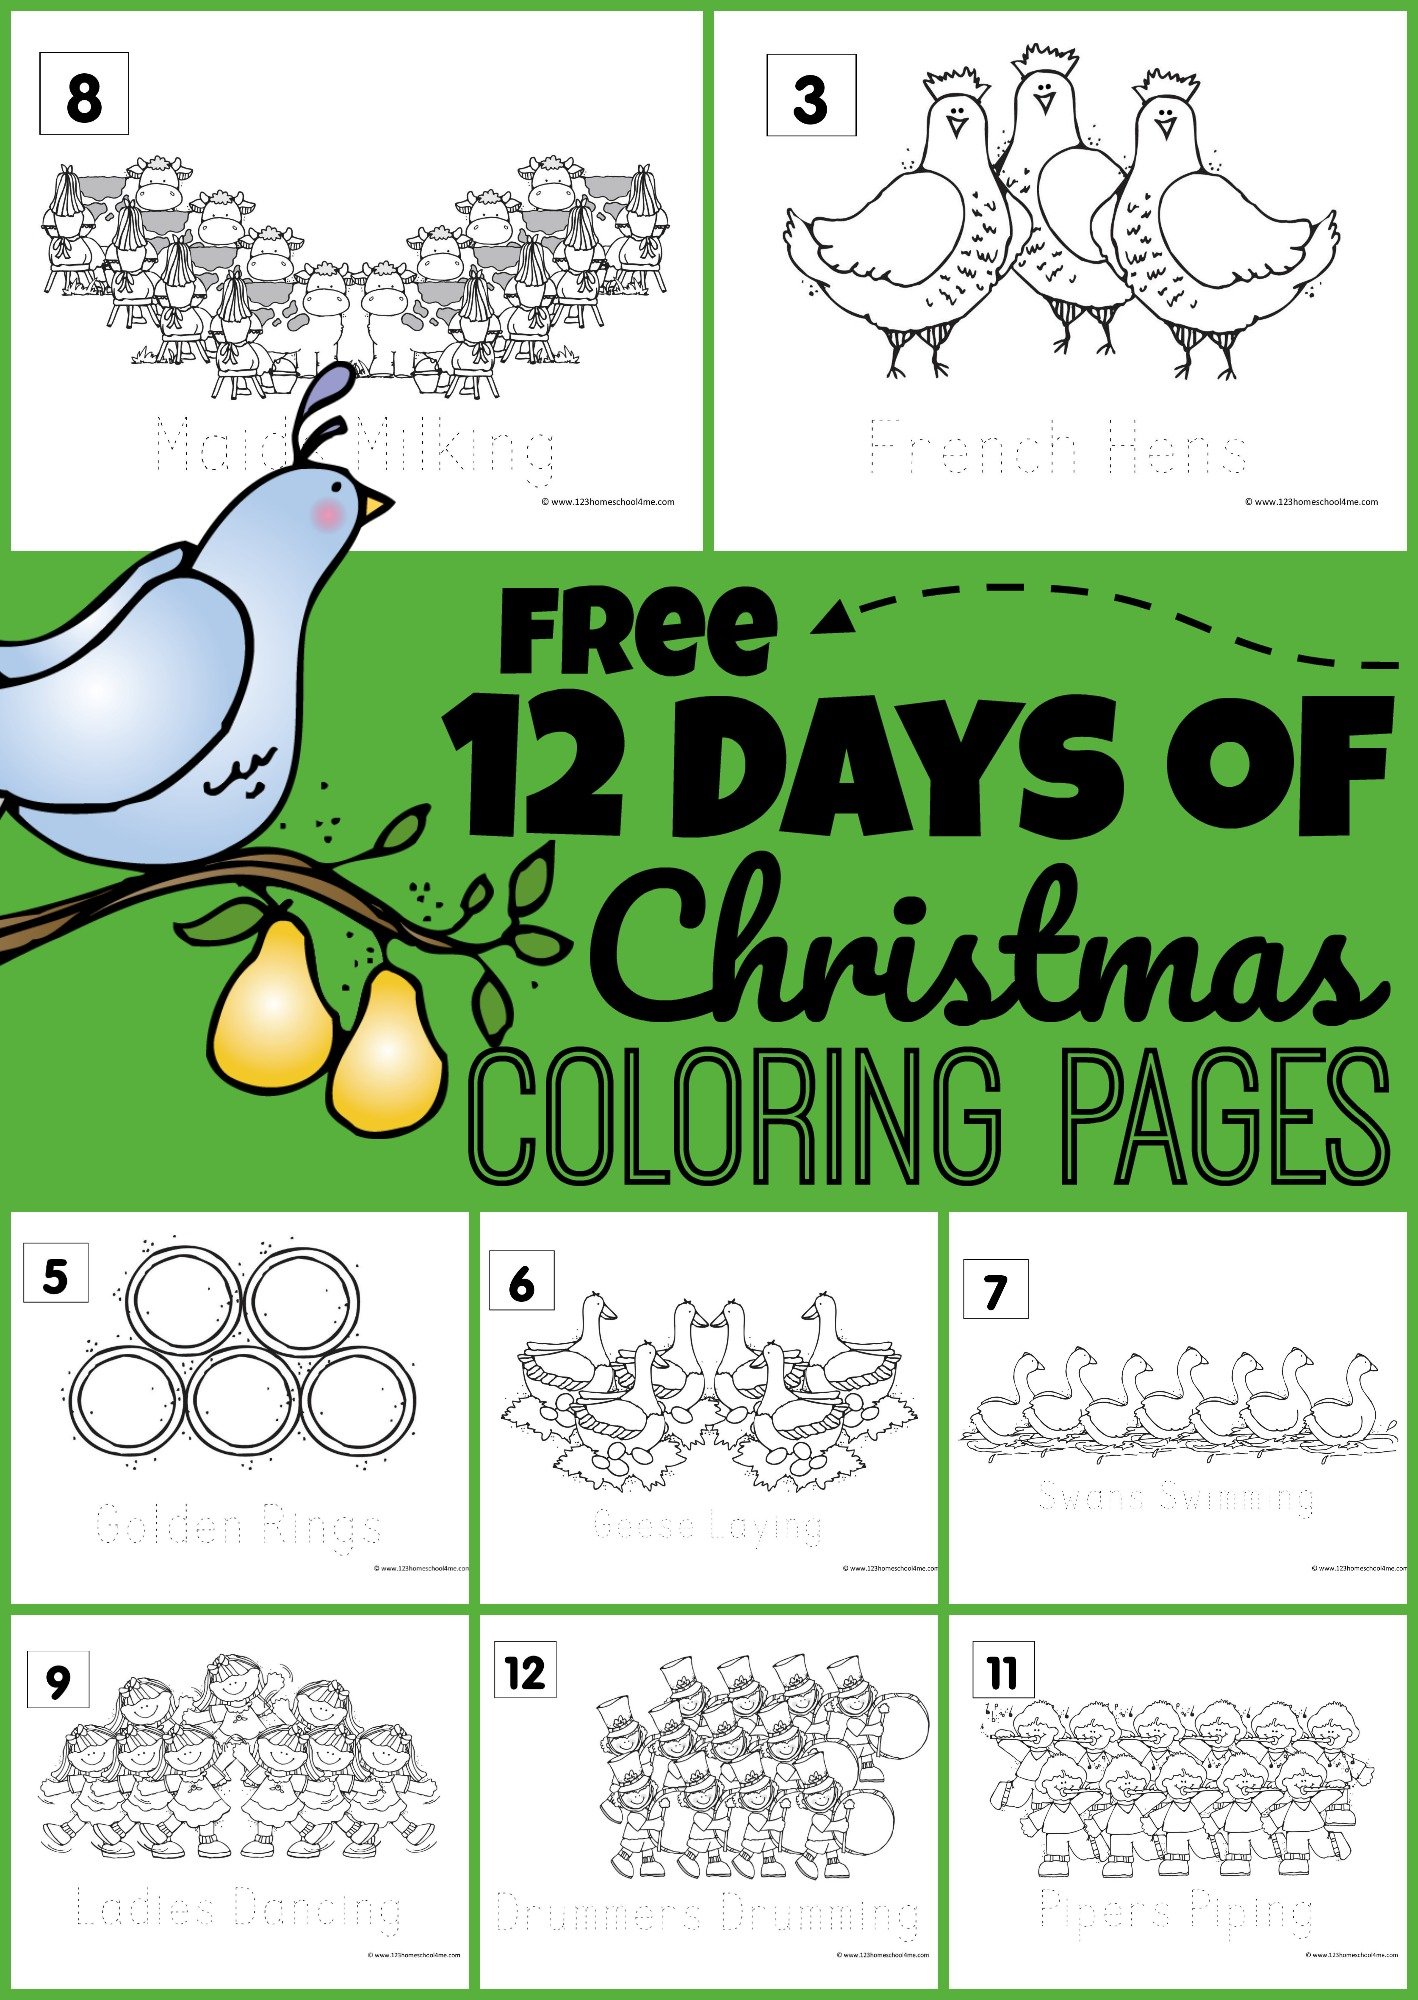 hight resolution of FREE 12 Days of Christmas Coloring Pages